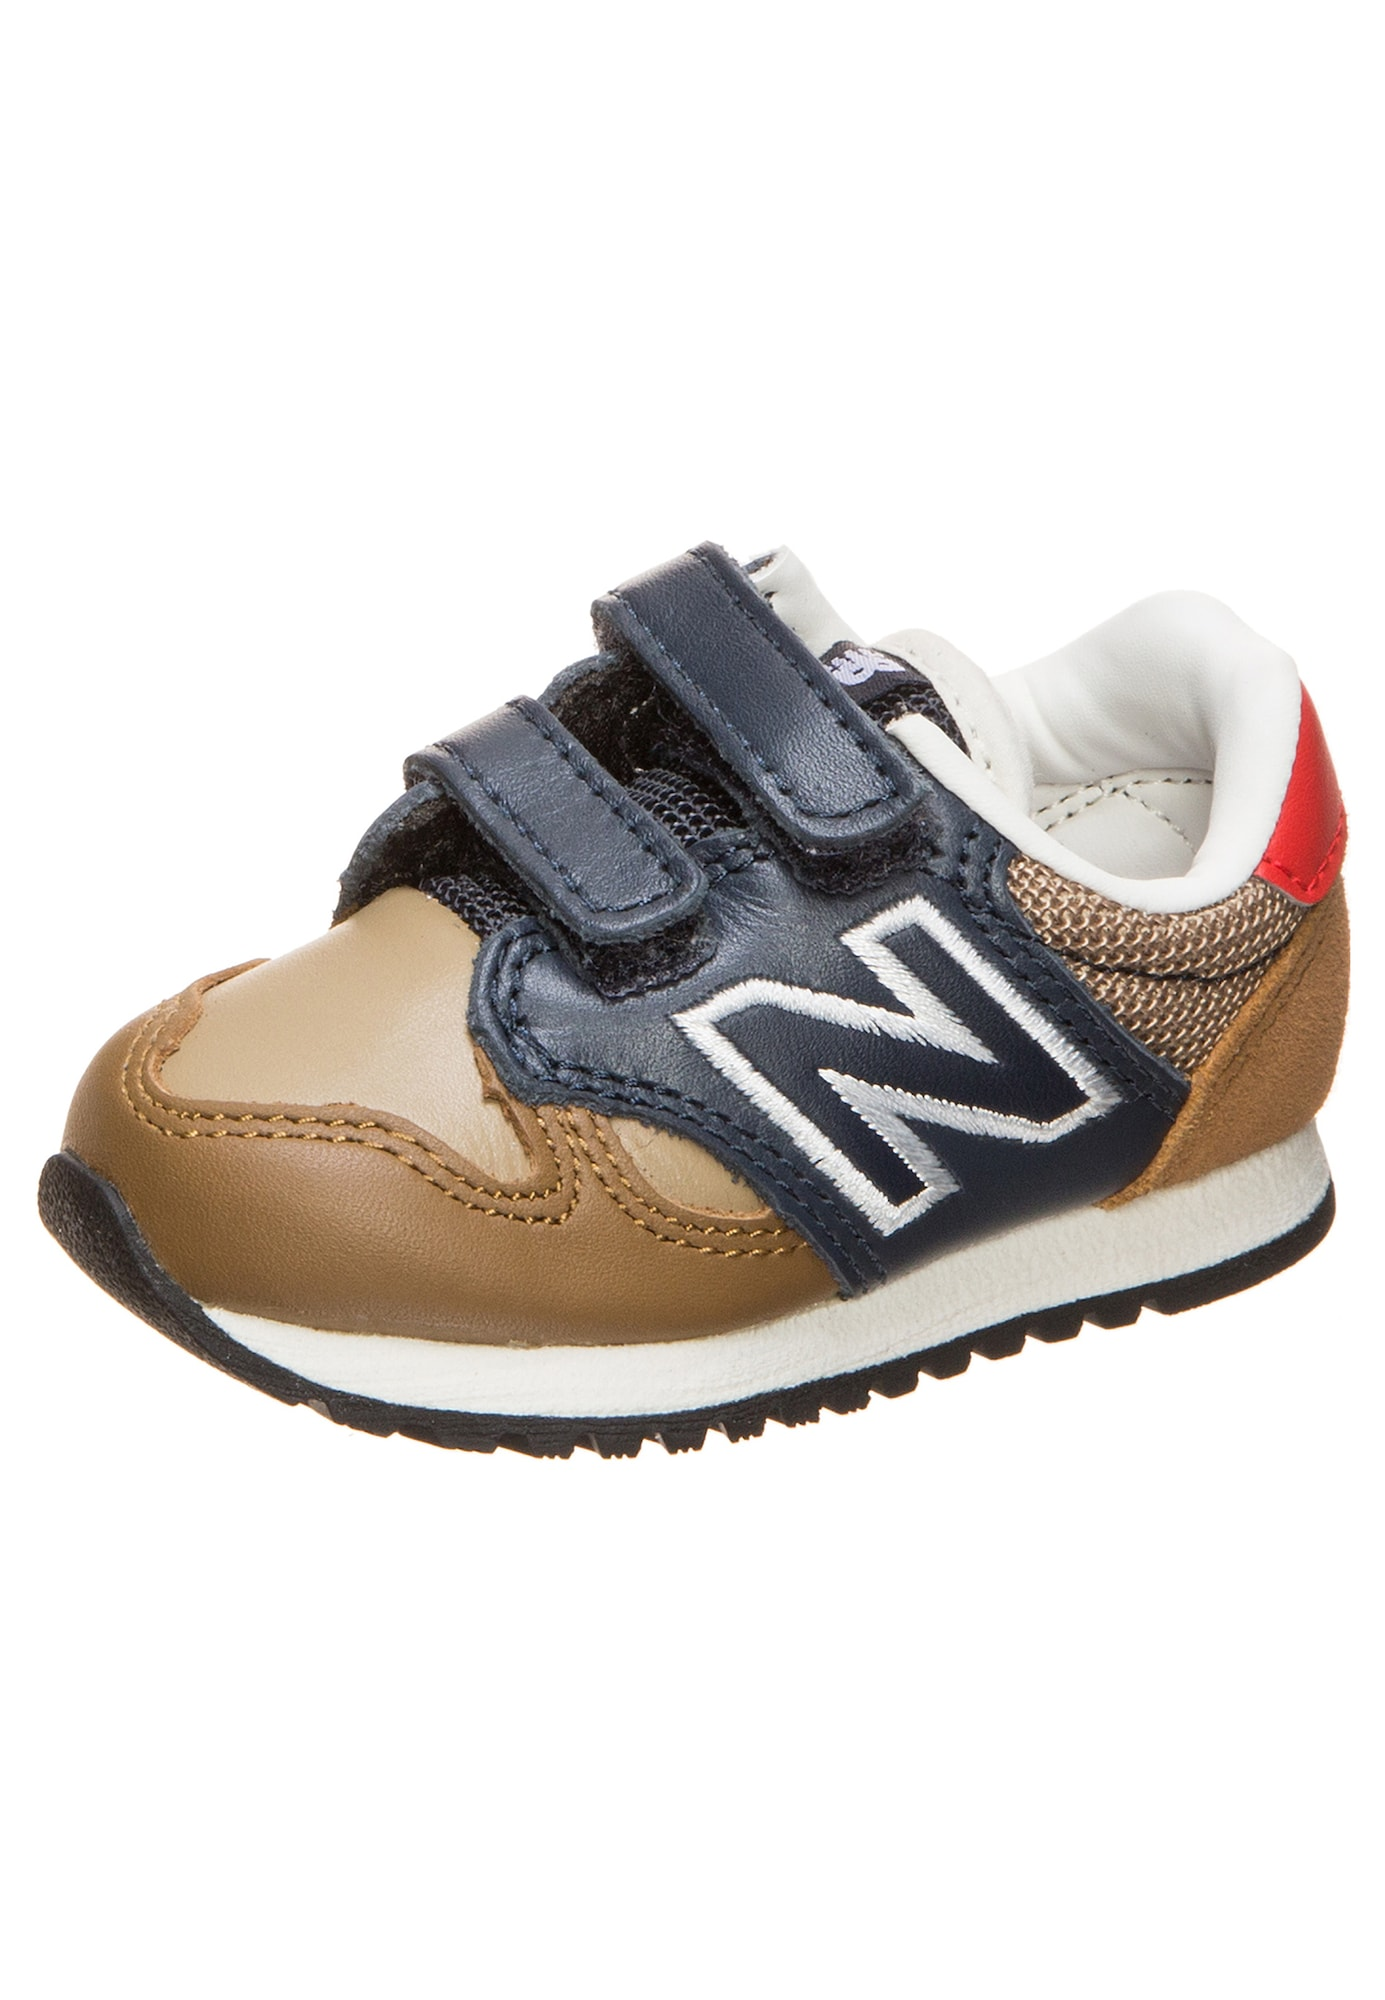 Babyschuhe - Sneaker 'IV520 M' - Onlineshop ABOUT YOU